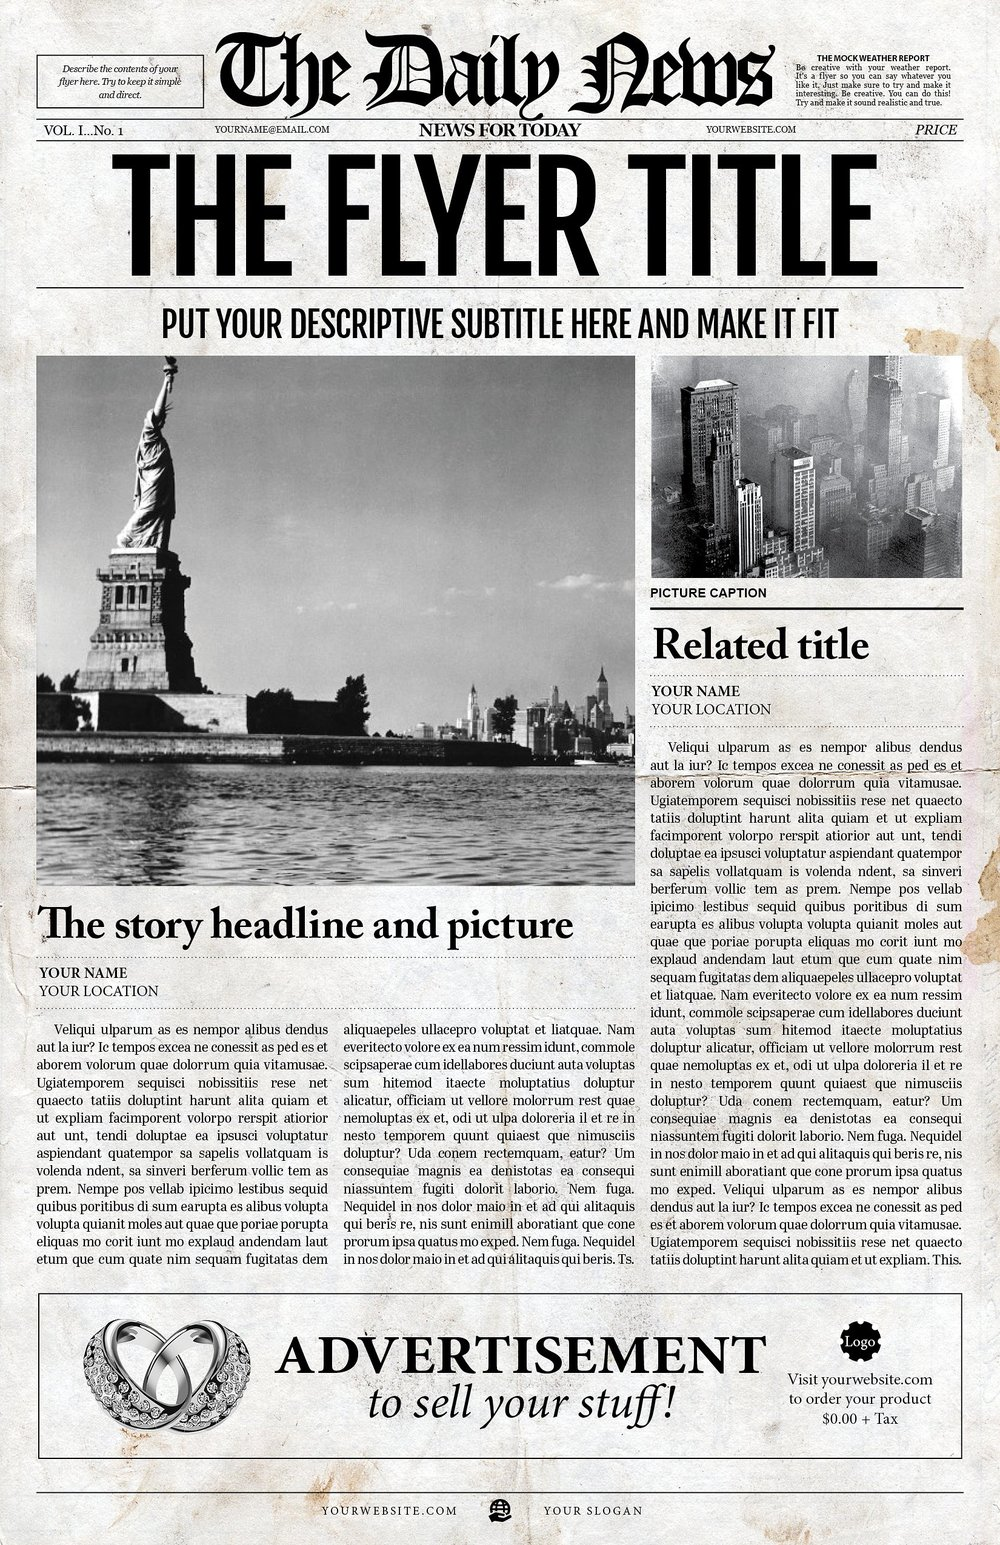 newspaper template 2x1 page newspaper template adobe indesign 11x17 inch. Black Bedroom Furniture Sets. Home Design Ideas